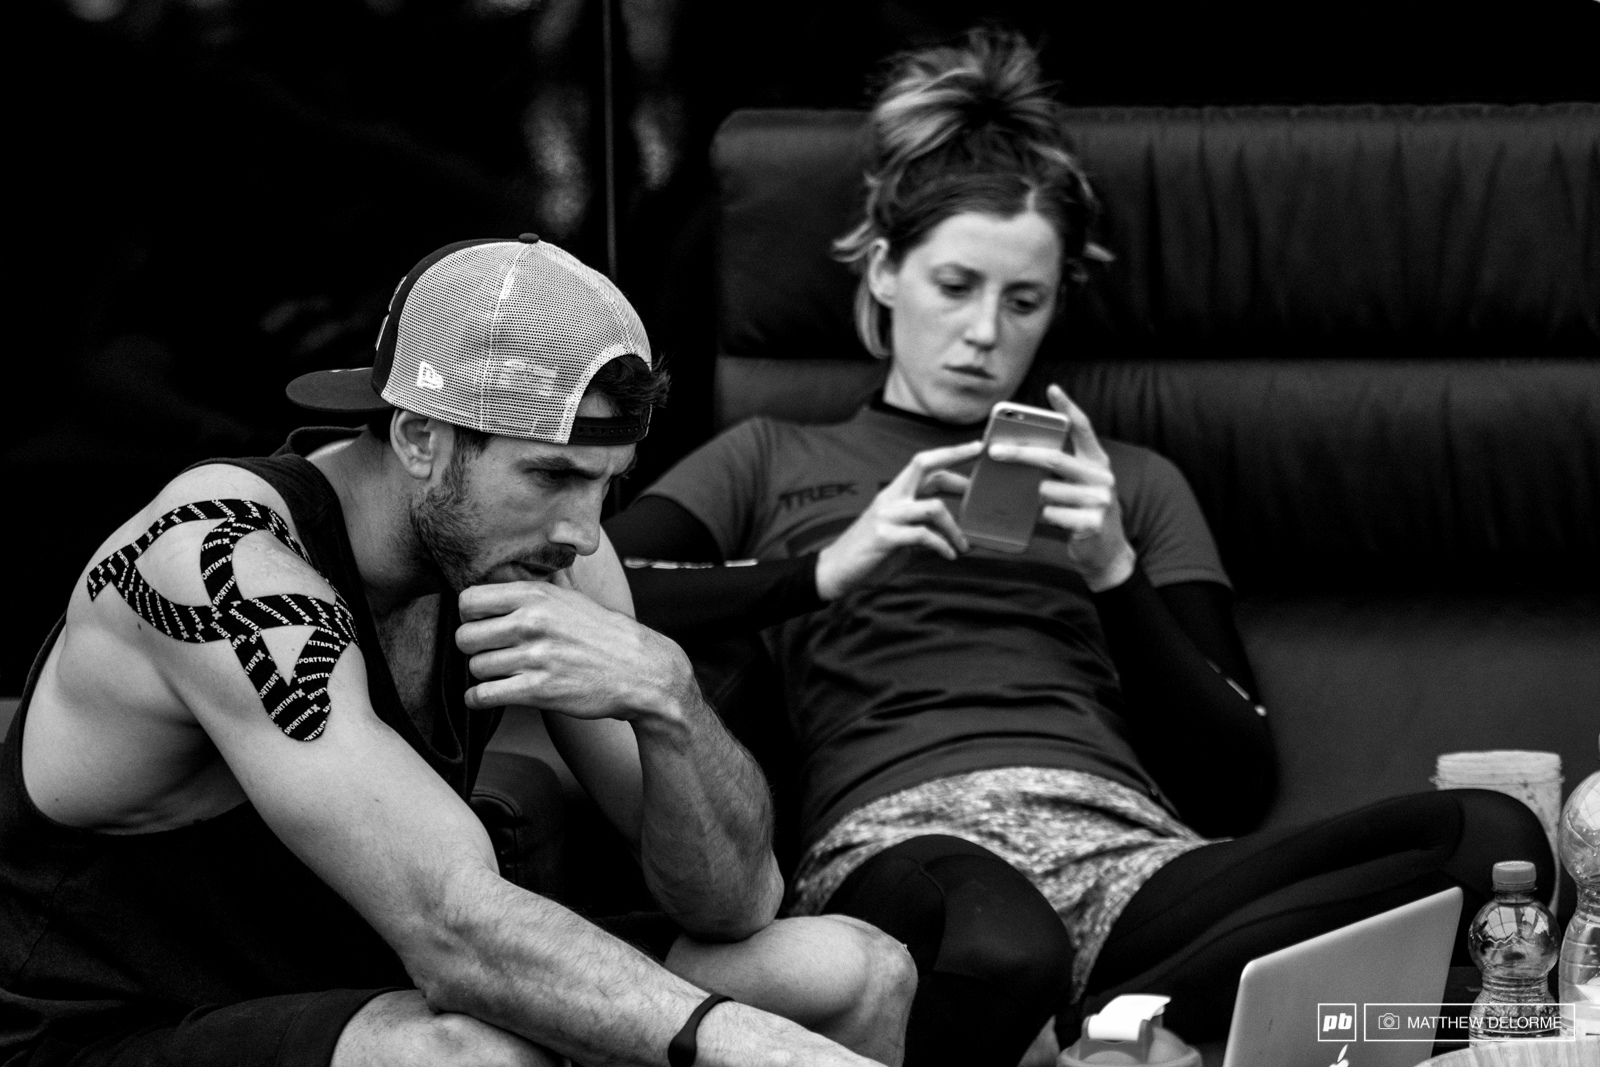 Gee does a little post practice GoPro footage reviews while Rach takes a little time to relax.